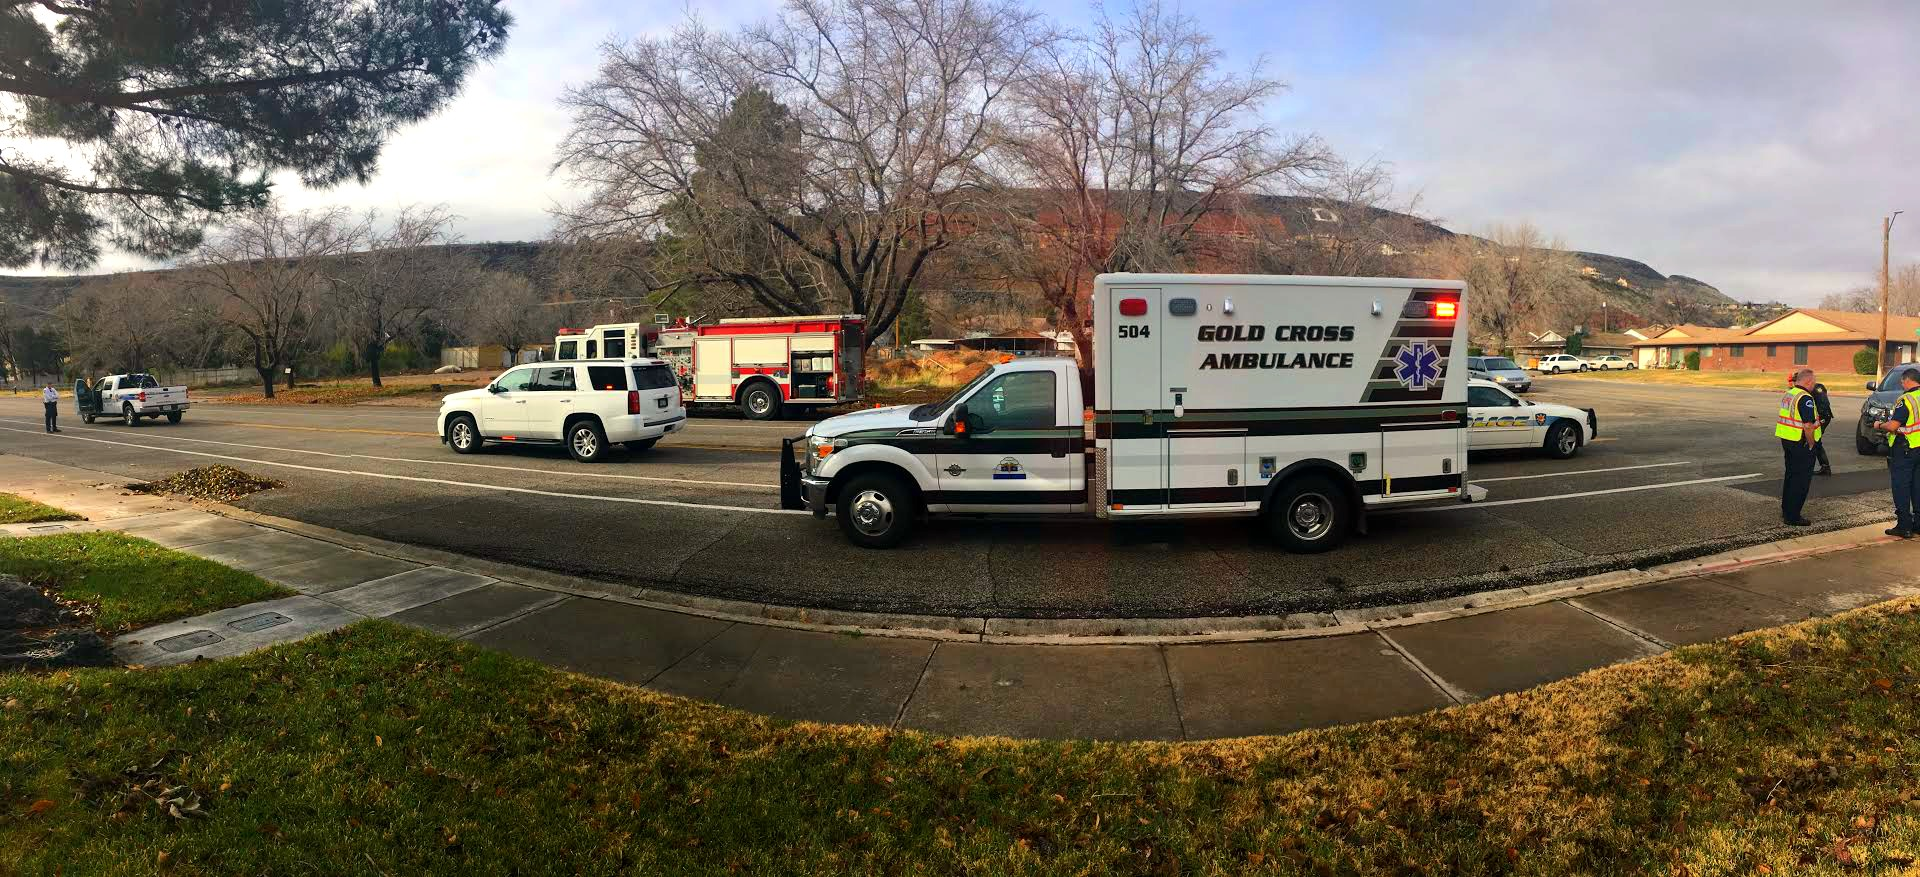 Gold Cross Ambulance responds to the t-bone crash on W. 100 South and S. 300 West Friday morning that involved two vehicles that resulted in no serious injuries, St. George, Utah, Dec. 23, 2016 | Photo by Brett Barrett, St. George News